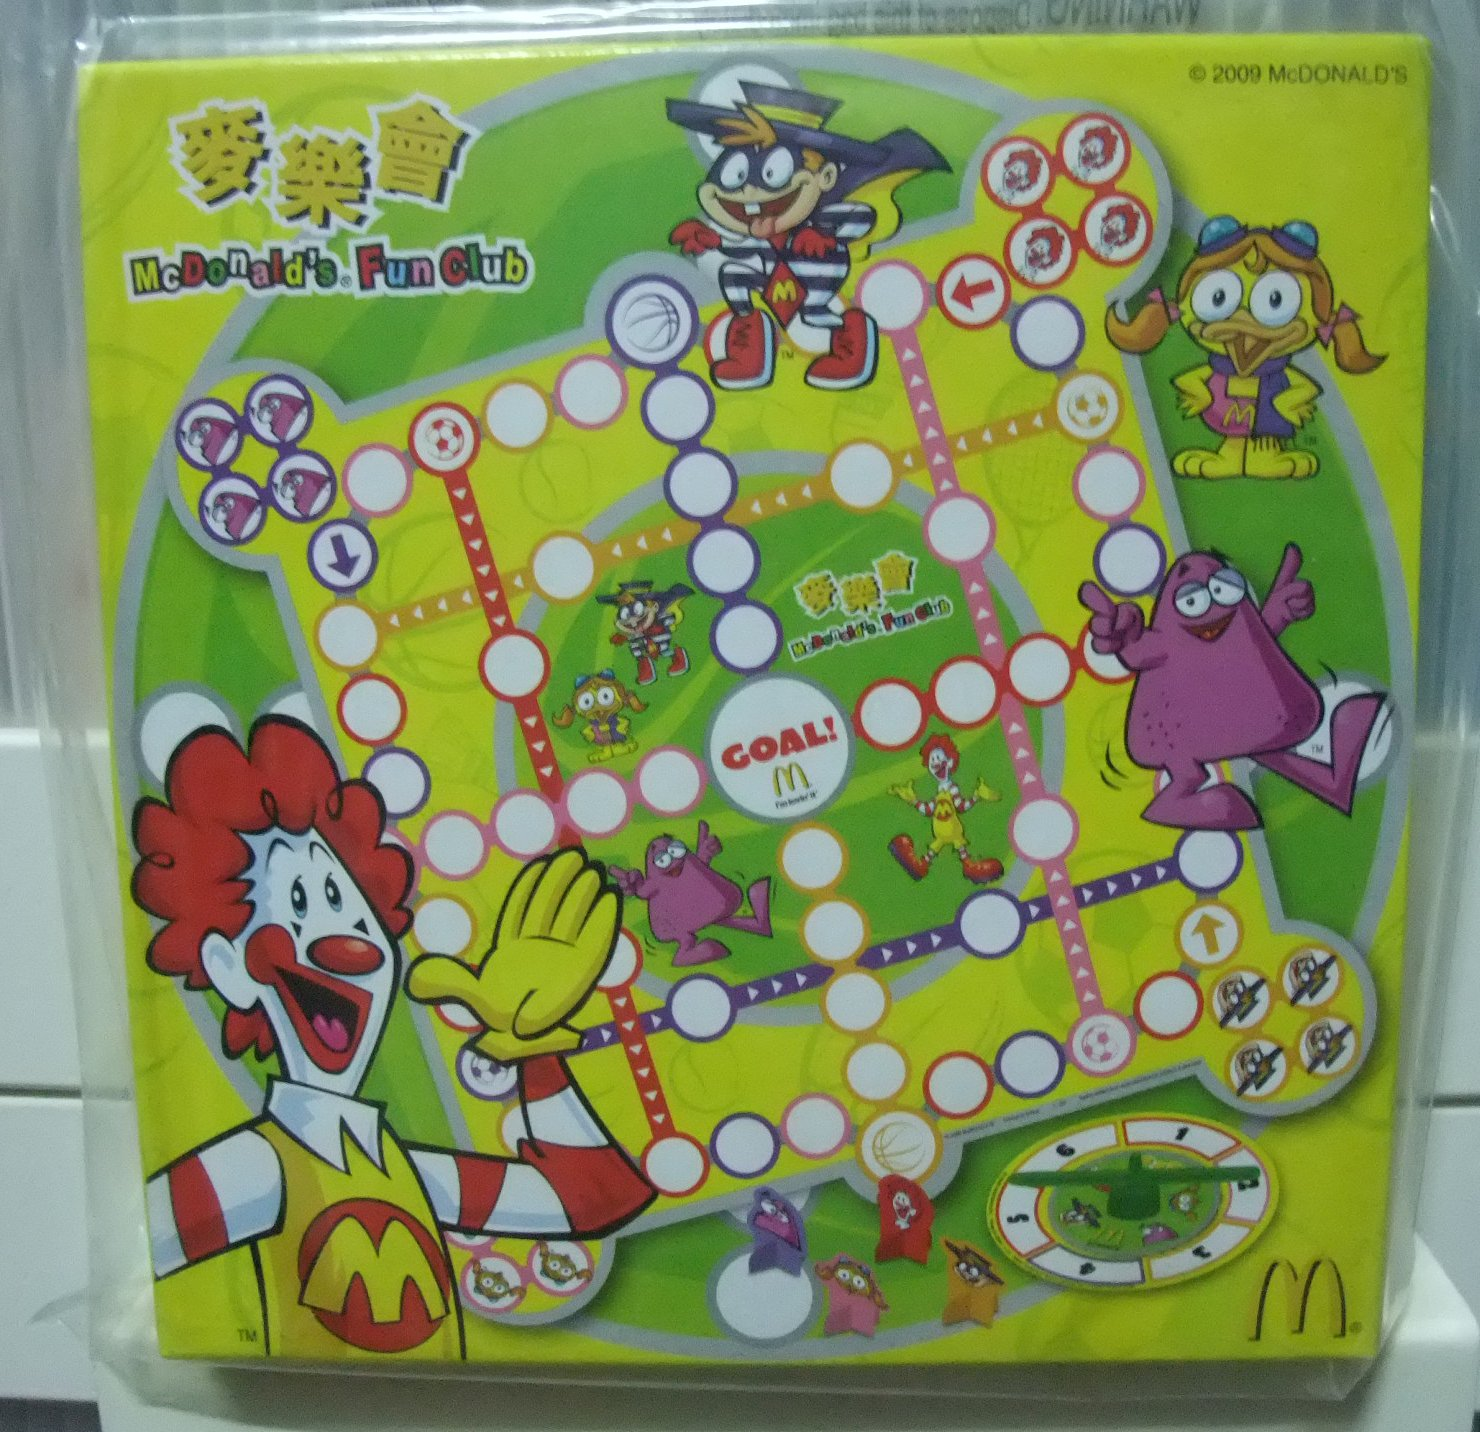 McDonald's aeroplane chess party gift for children , family game